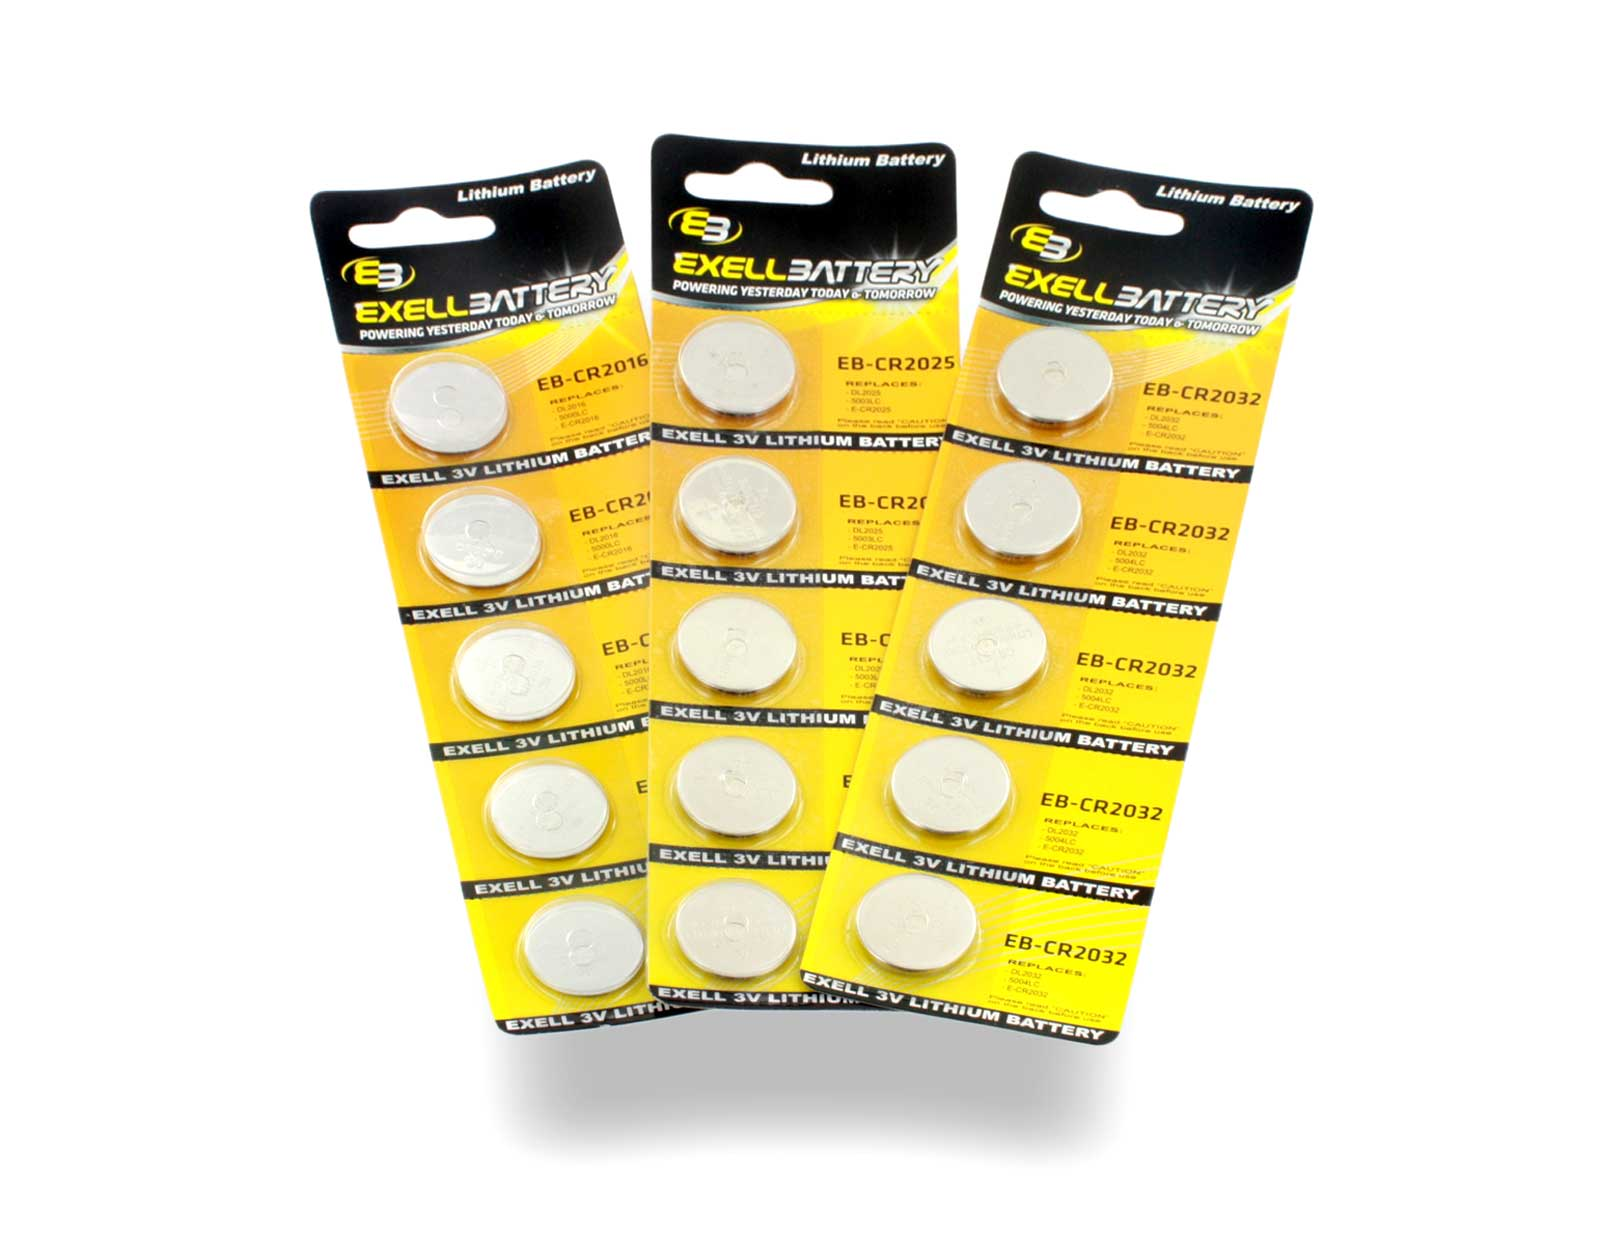 Exell Battery Coin Cell Batteries